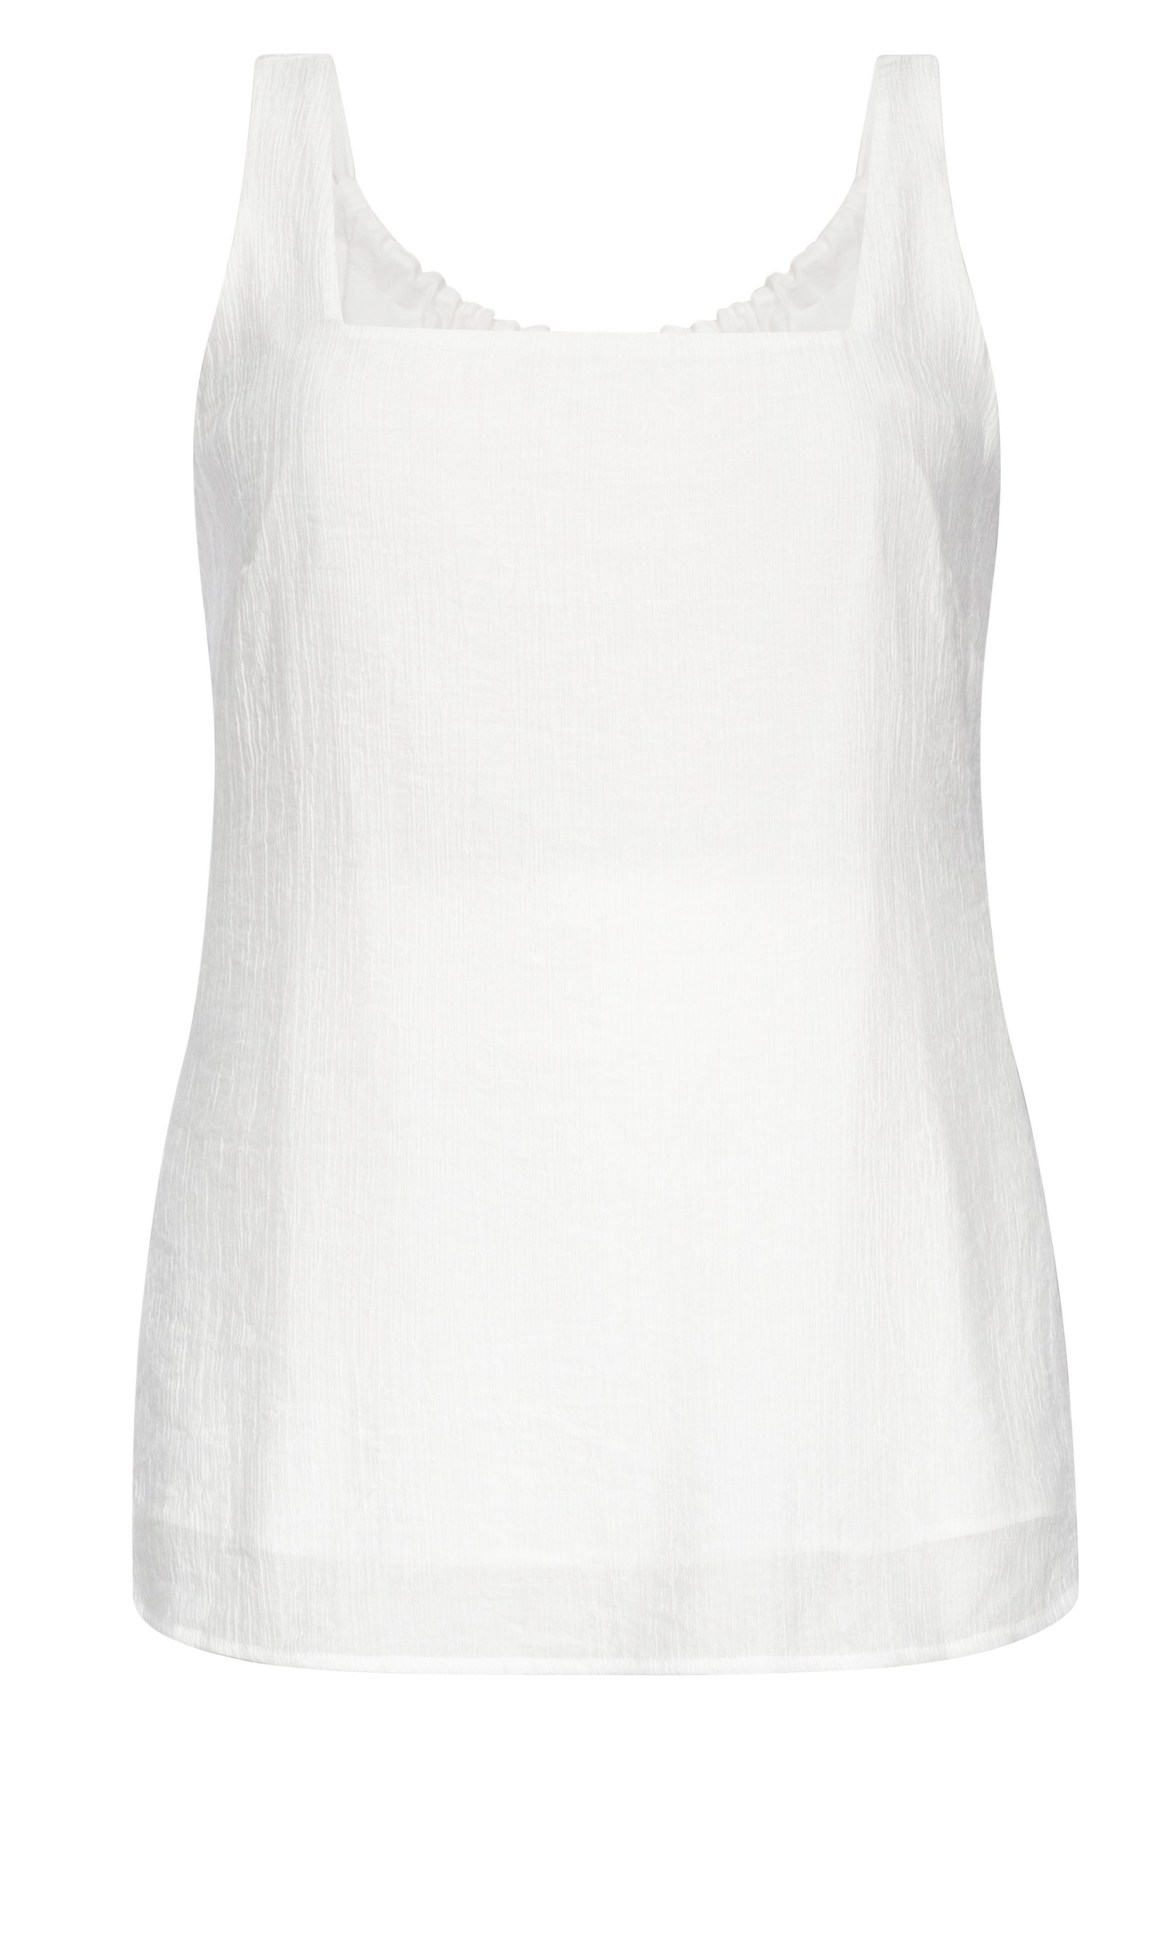 Betty Bow Top - ivory 6